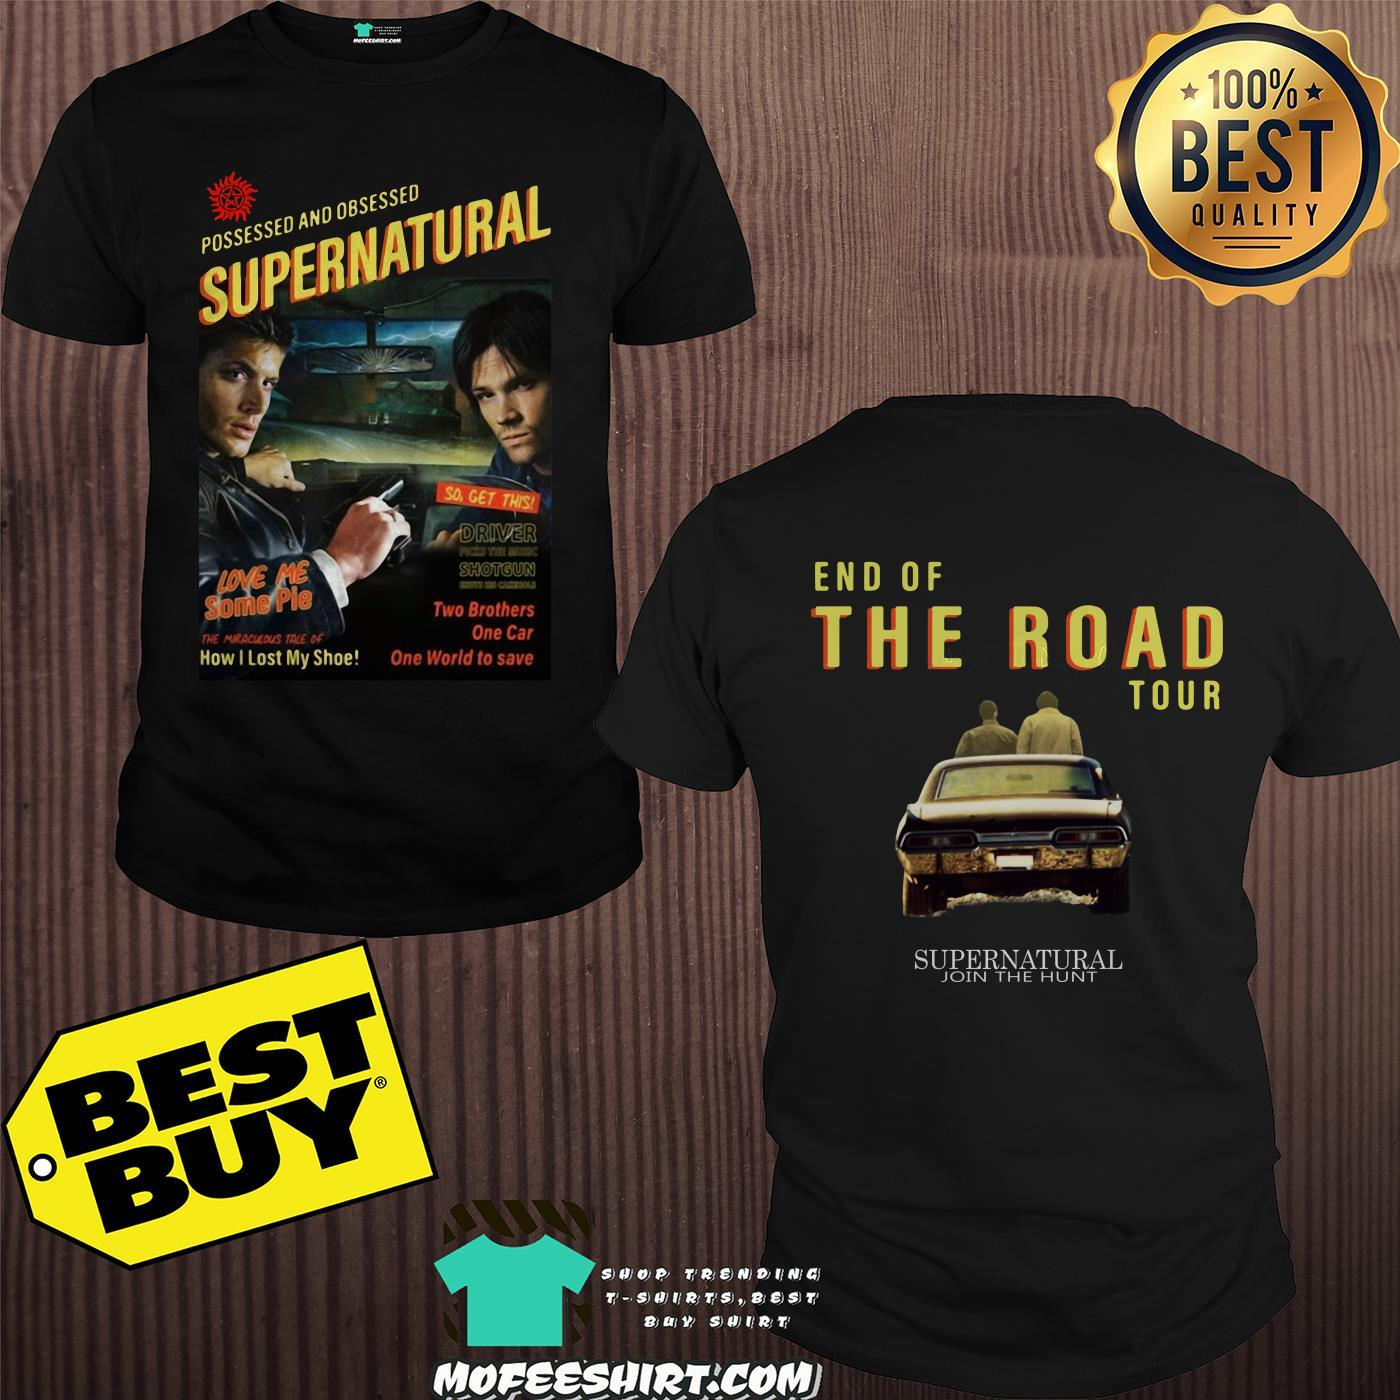 Supernatural Day 2019 End of the Road Tour Possessed and Obsessed love Me some Pie Two Brothers one Car one World to save shirt